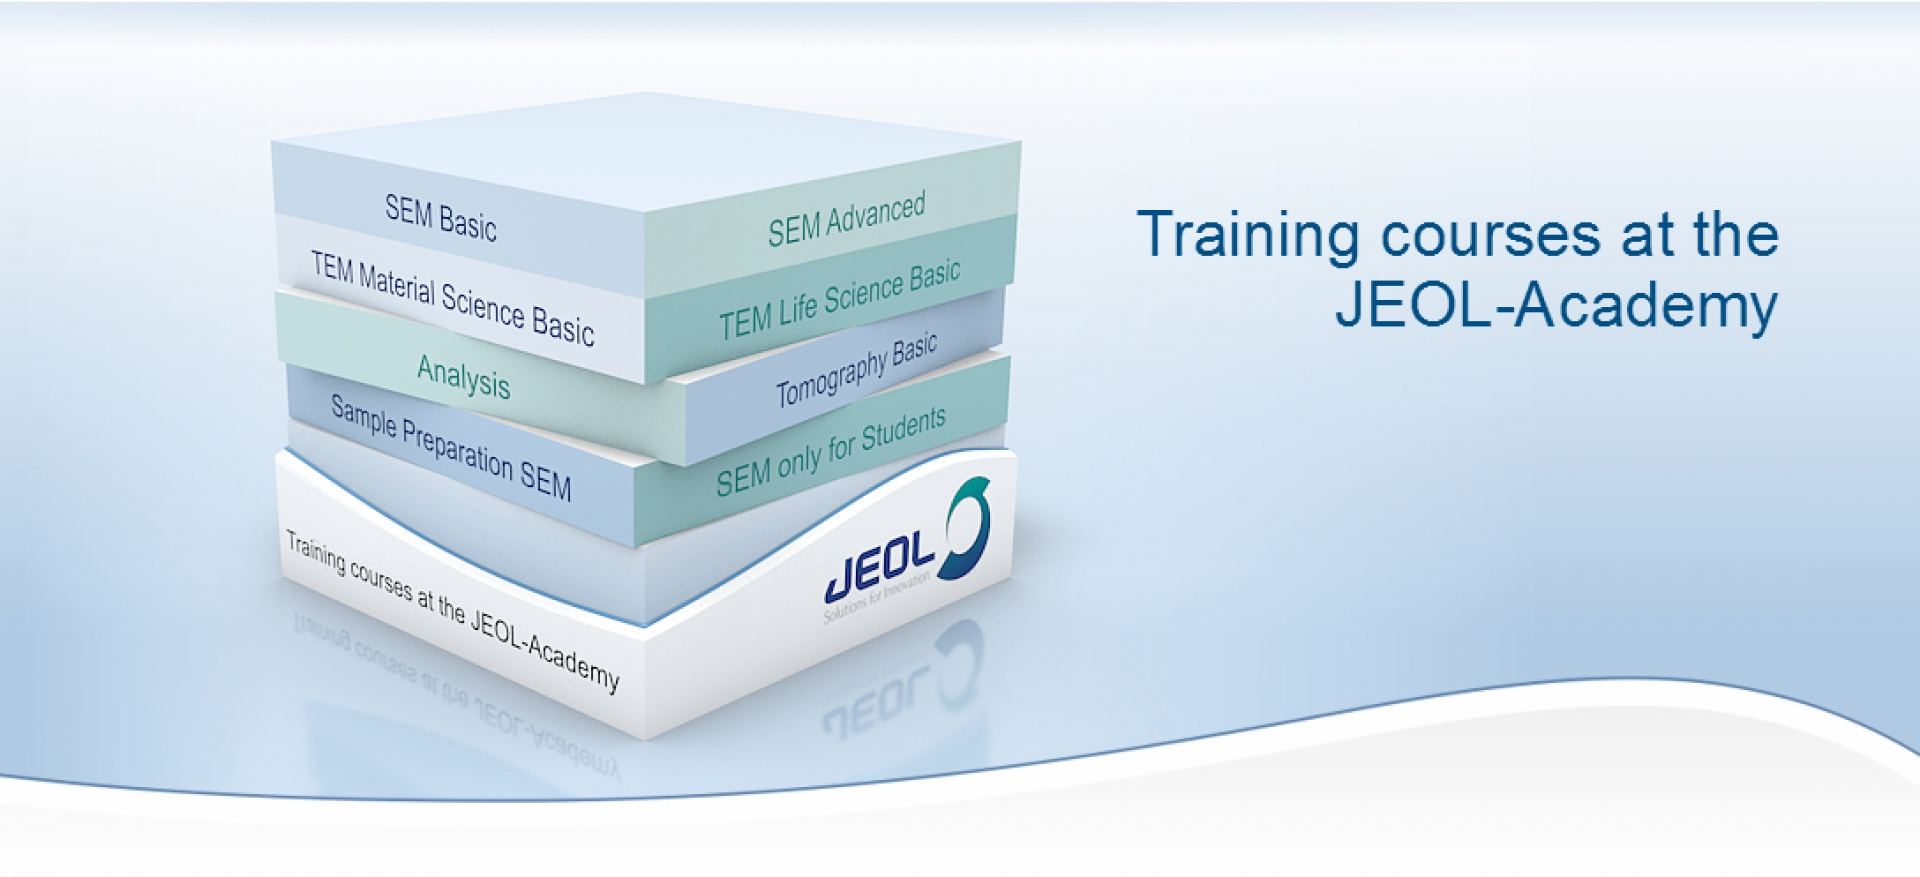 Training courses at the JEOL-Academy